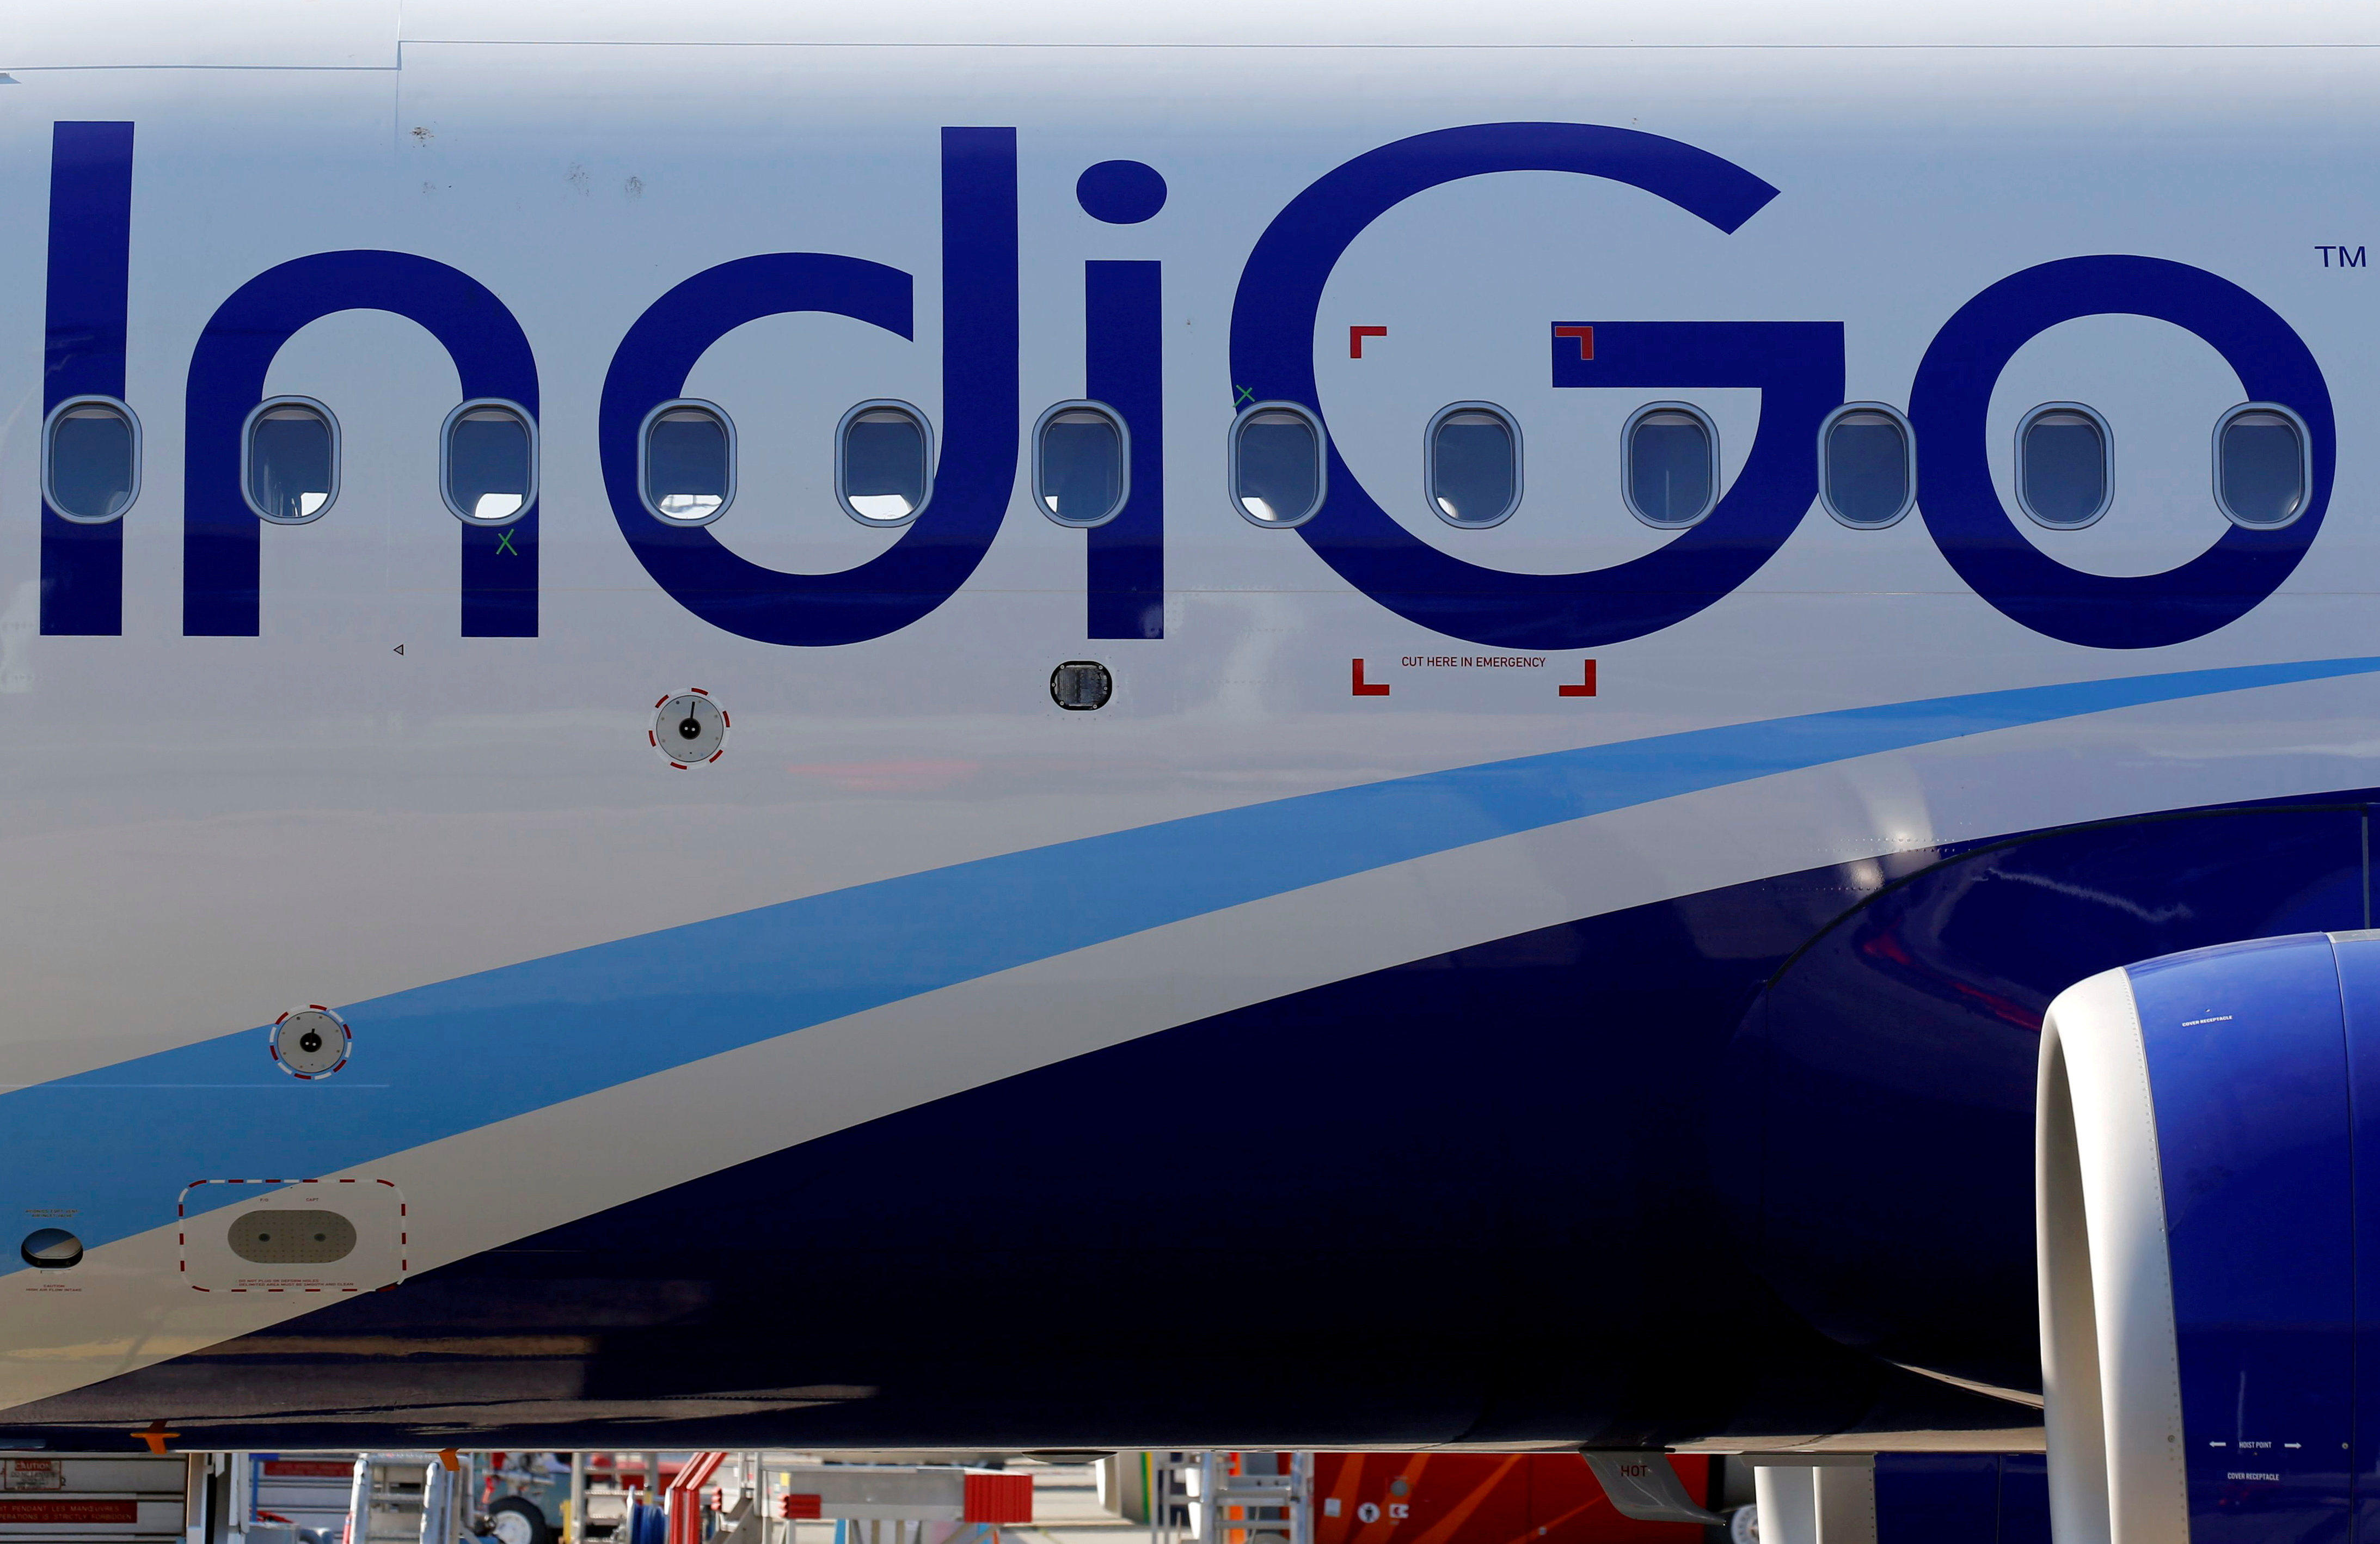 The logo of IndiGo Airlines is pictured on passenger aircraft on the tarmac in Colomiers near Toulouse, France, July 10, 2018. REUTERS/Regis Duvignau/File Photo